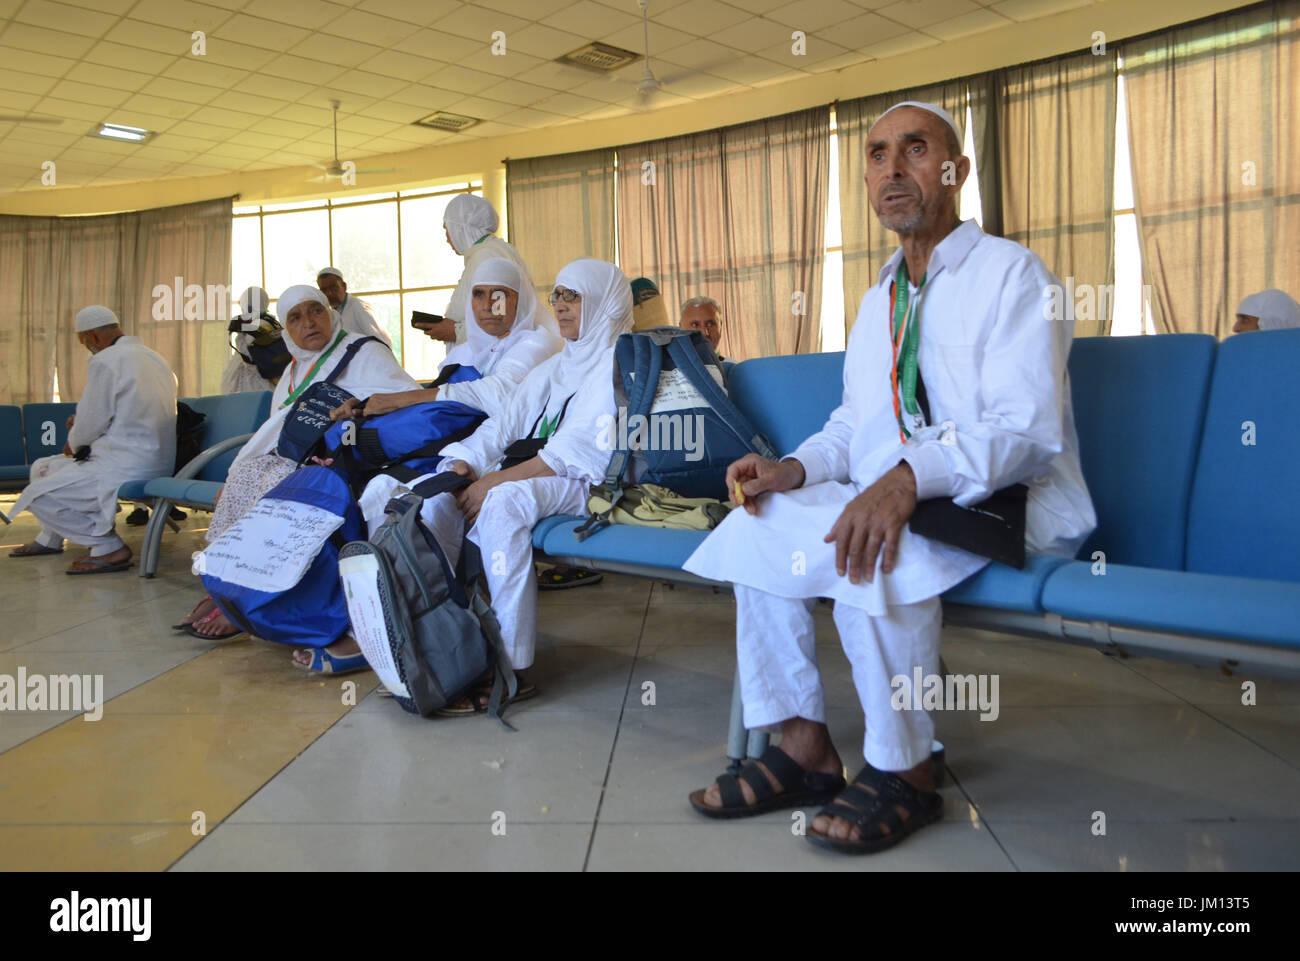 First batch of Kashmiri Hajj pilgrims left for Mecca from Srinagar, Indian Administered Kashmir (Photo by Muzamil Mattoo / Pacific Press) - Stock Image